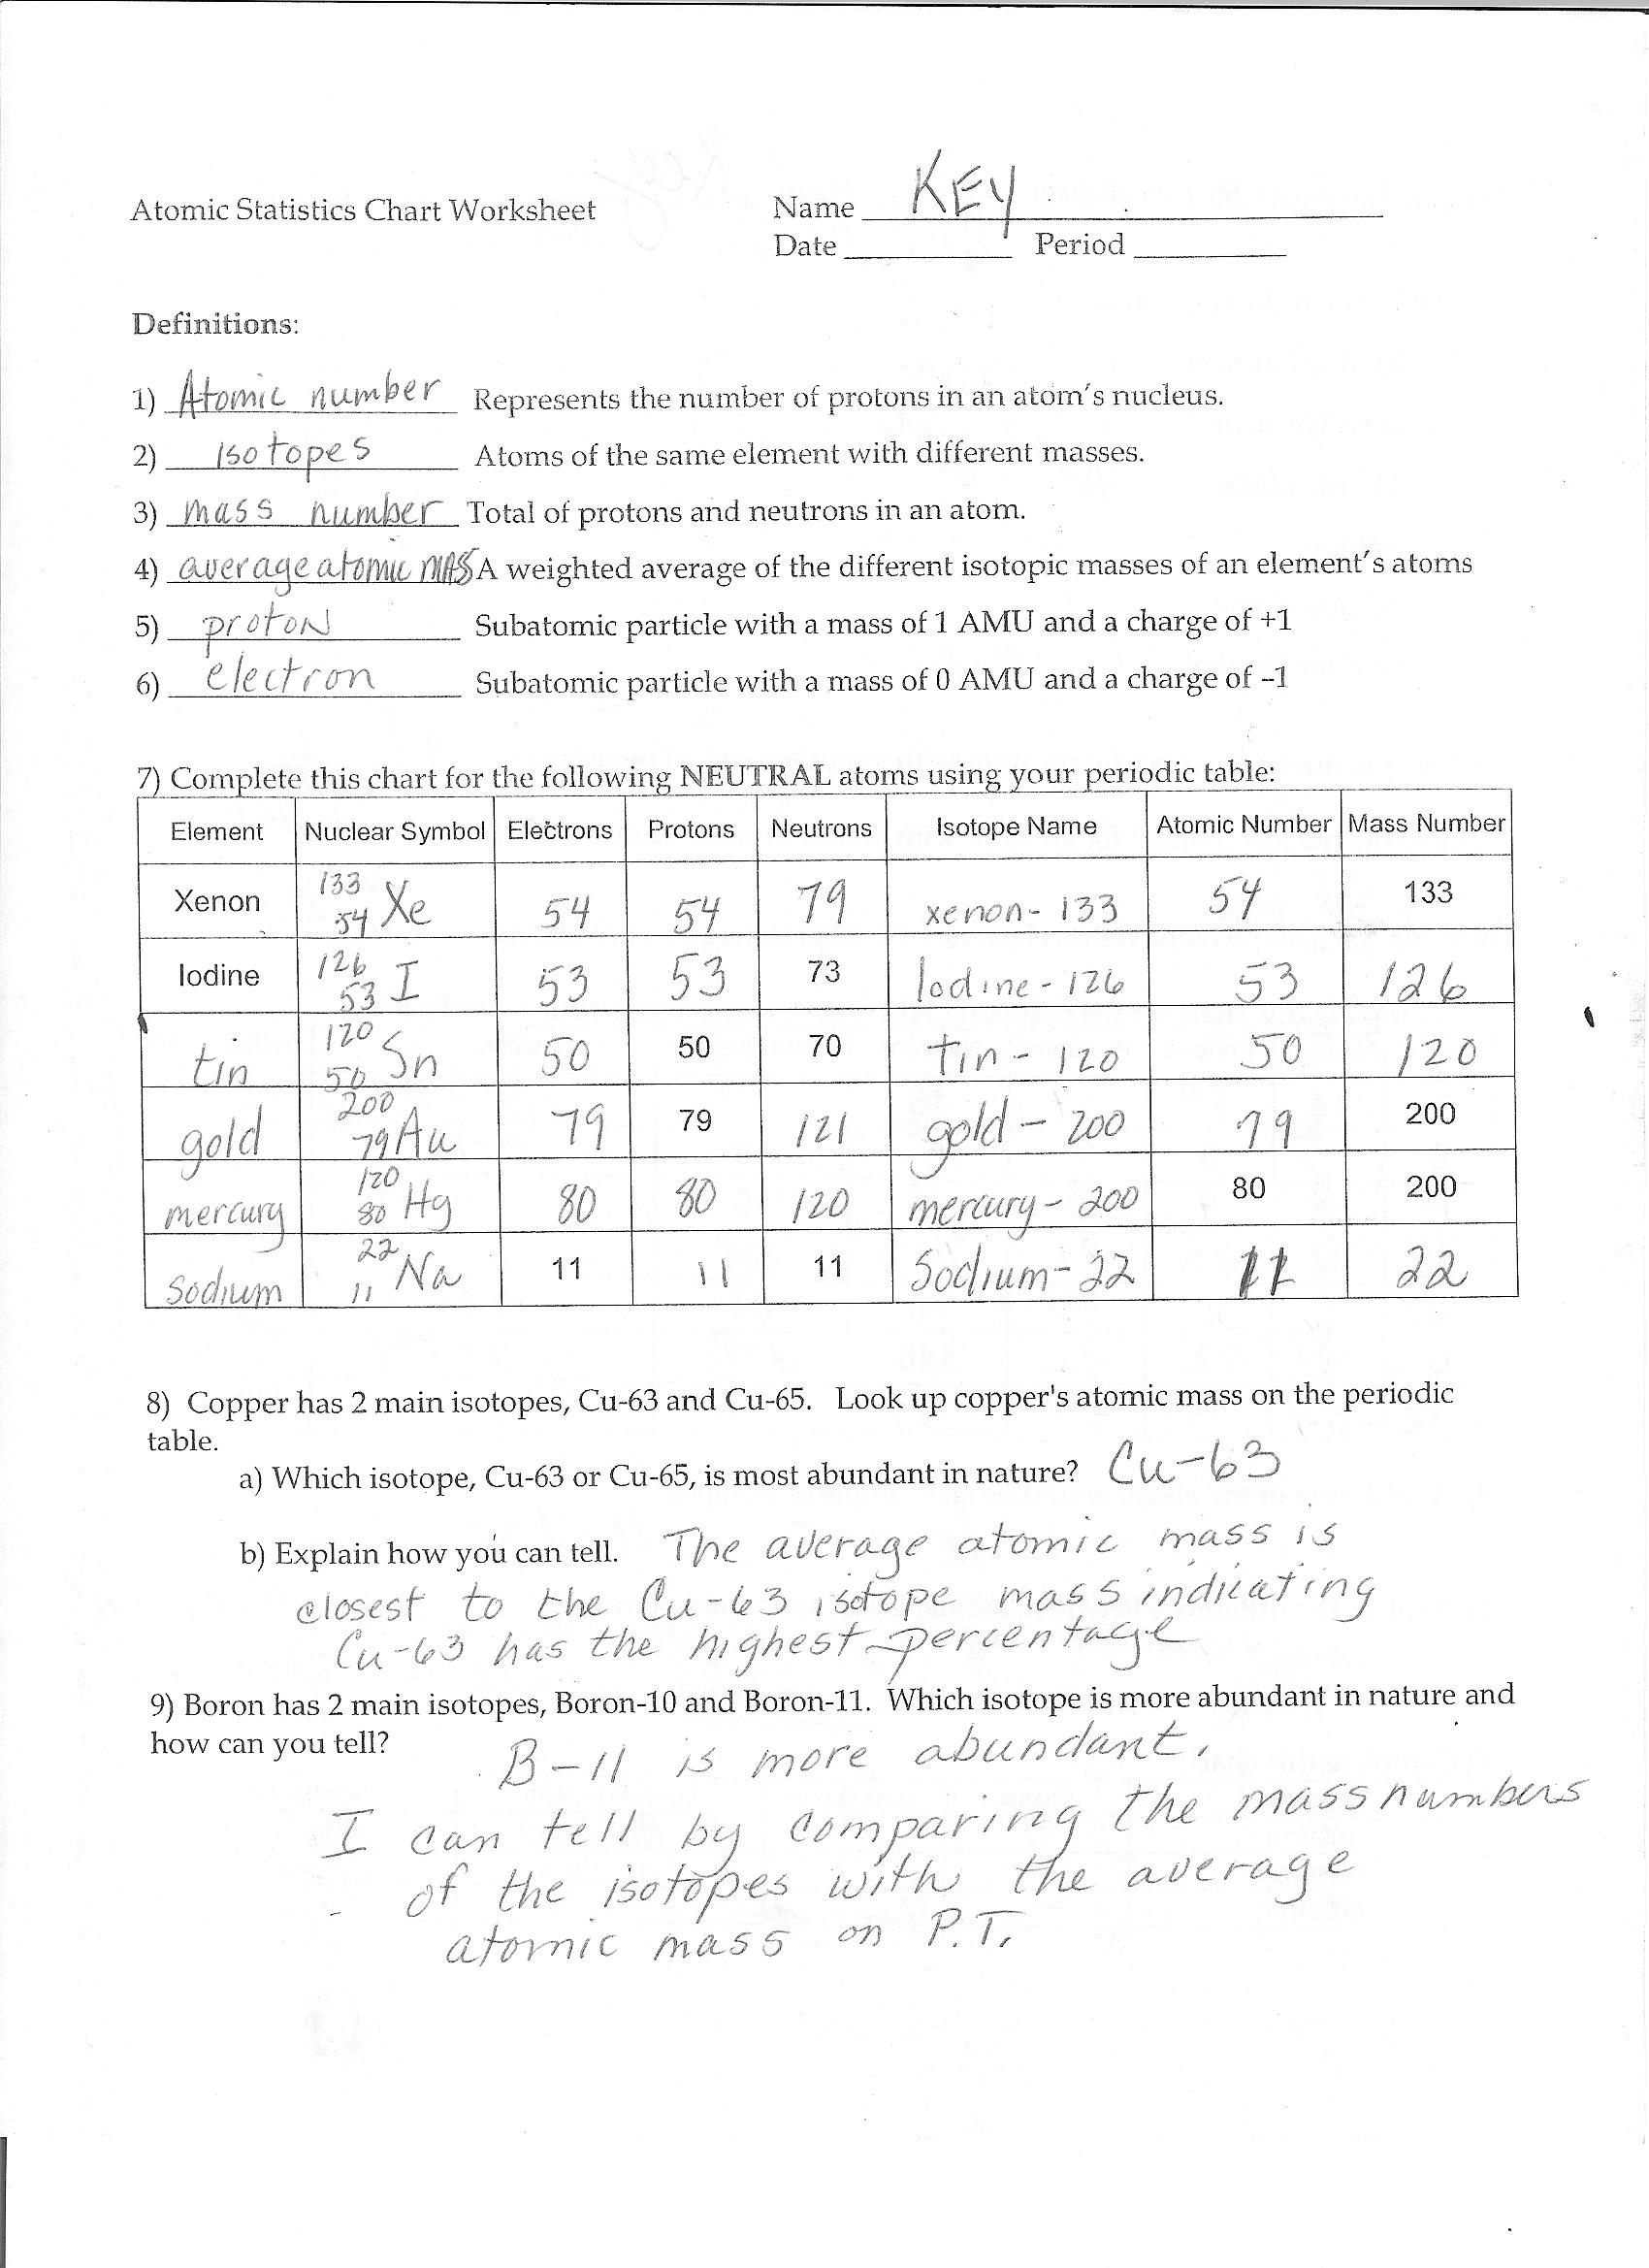 Atomic Structure Practice Worksheet 1 Free